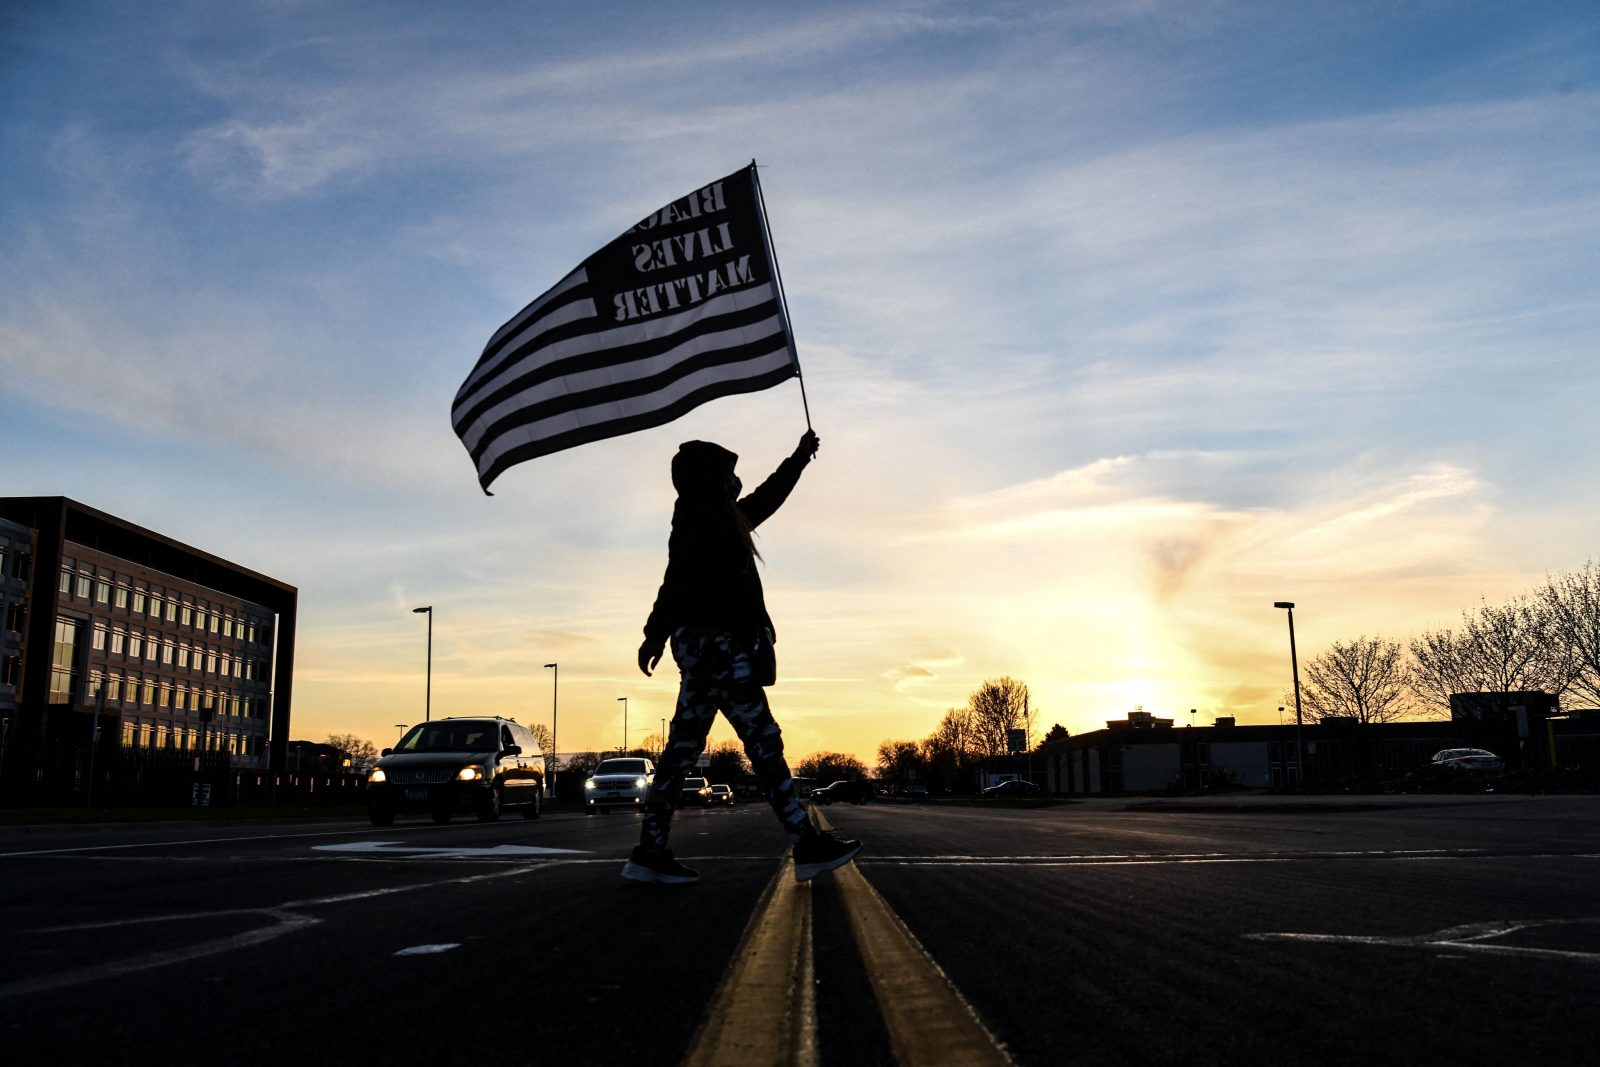 A demonstrator marches, holding a Black Lives Matter flag, during the sixth night of protests over the shooting death of Daunte Wright by a police officer in Brooklyn Center, Minnesota on April 16, 2021.